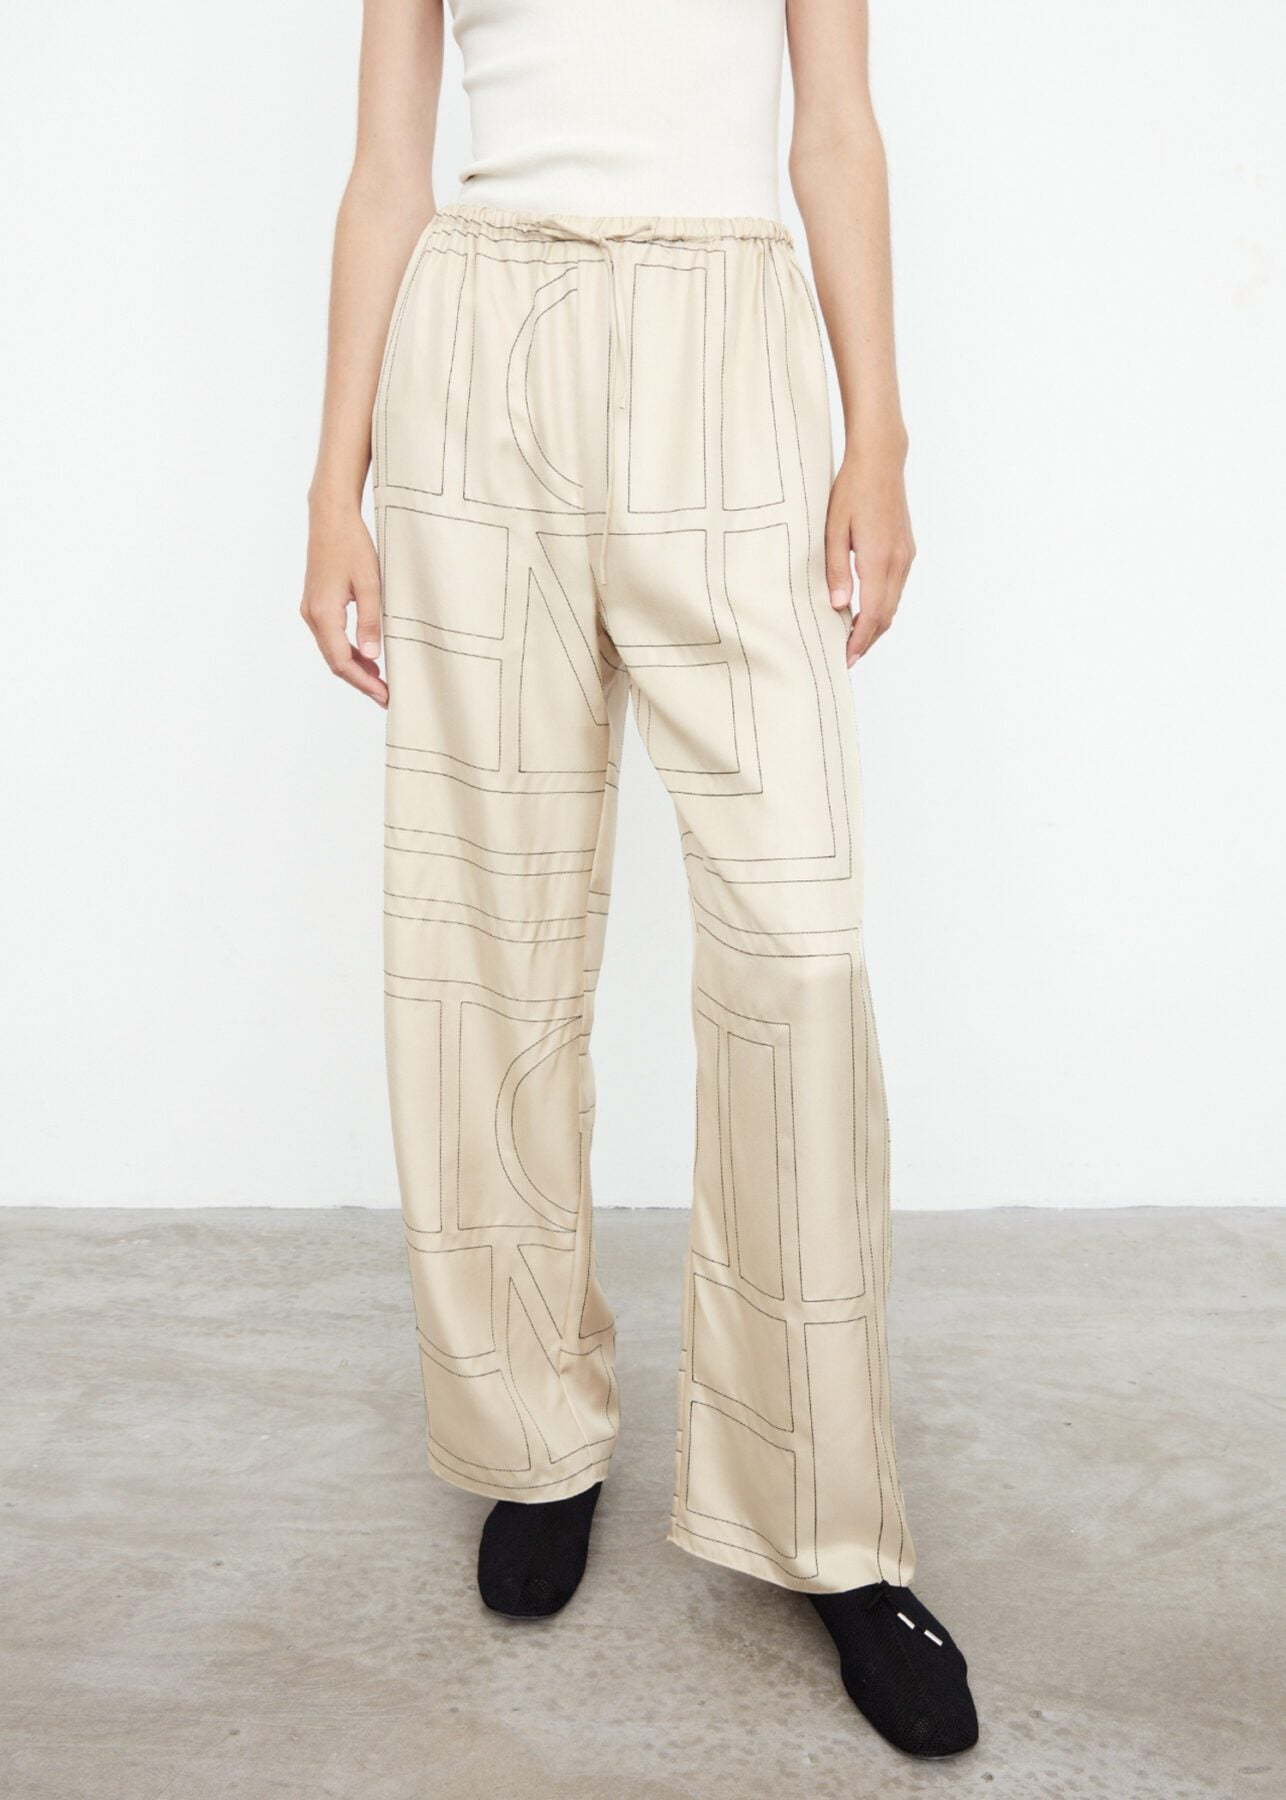 Monogram silk PJ bottoms ivory